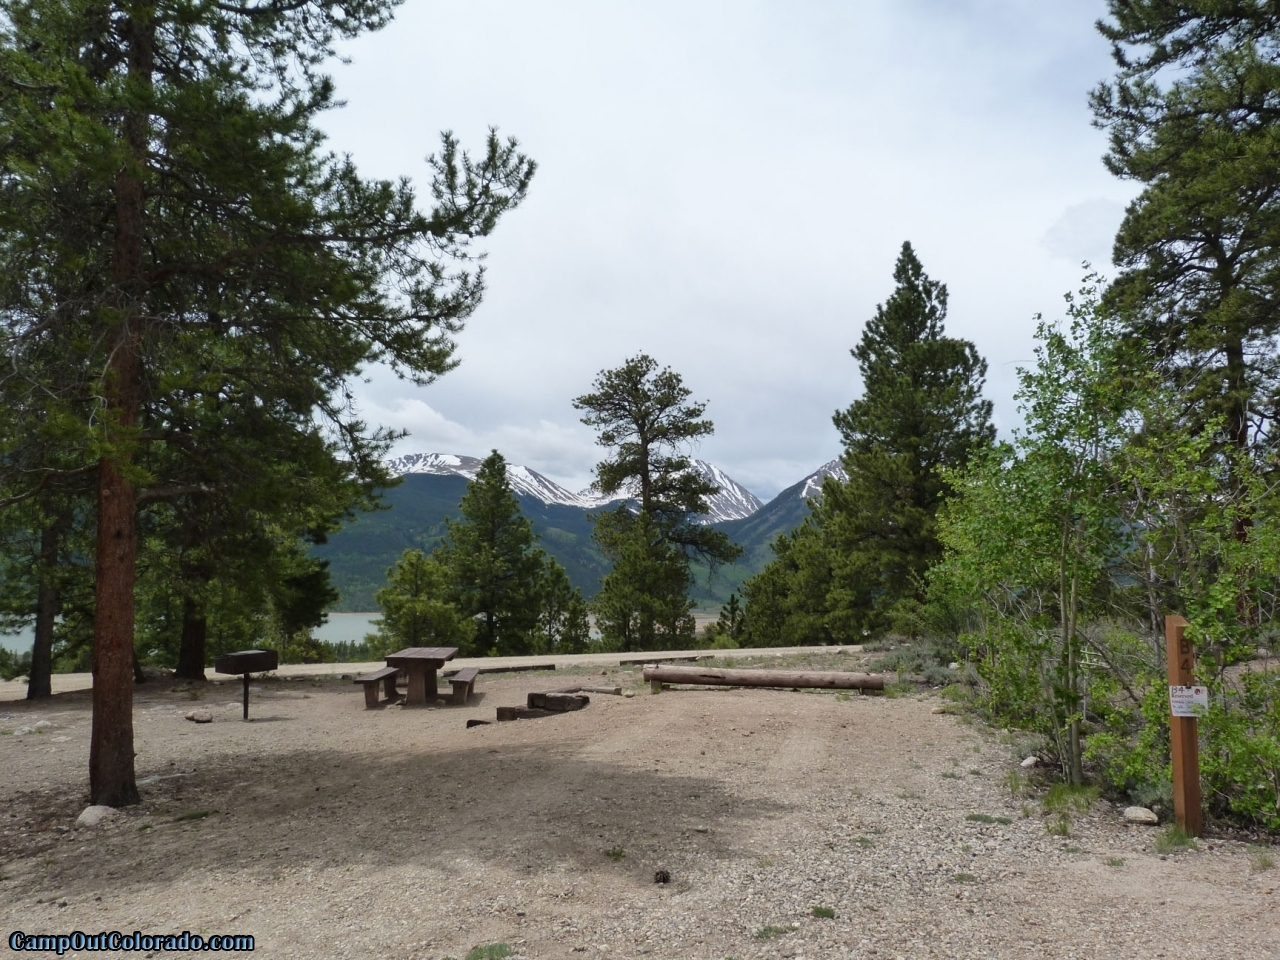 camp-out-colorado-lakeview-campground-good-view